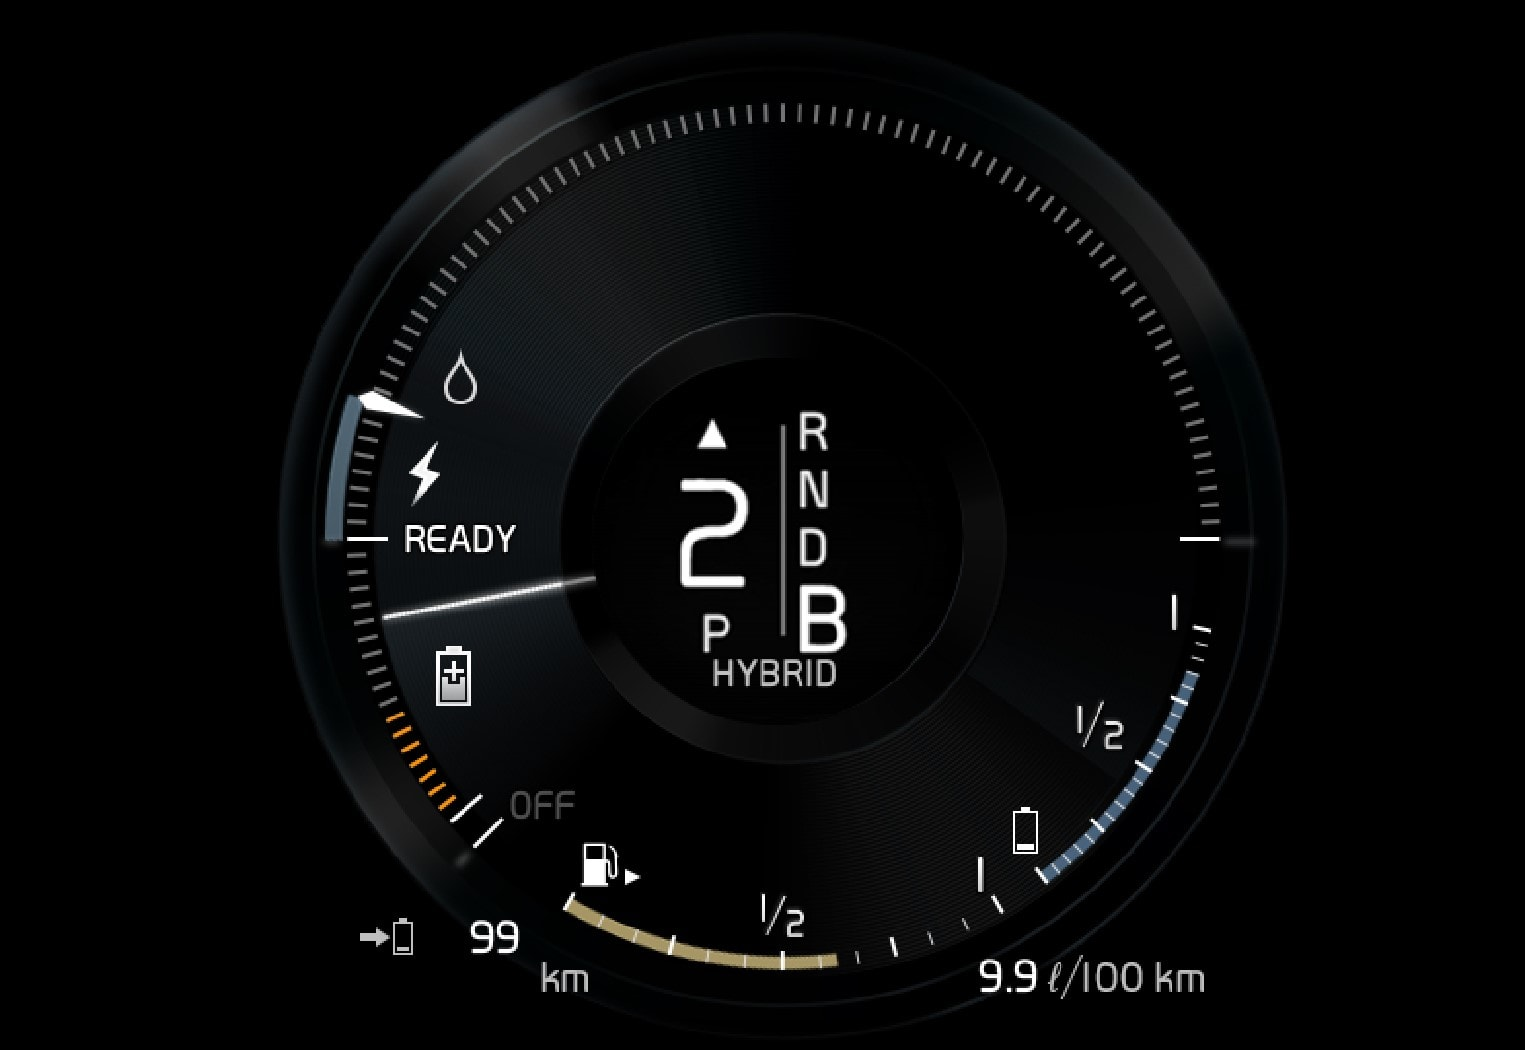 The driver display indicates charging during engine braking.